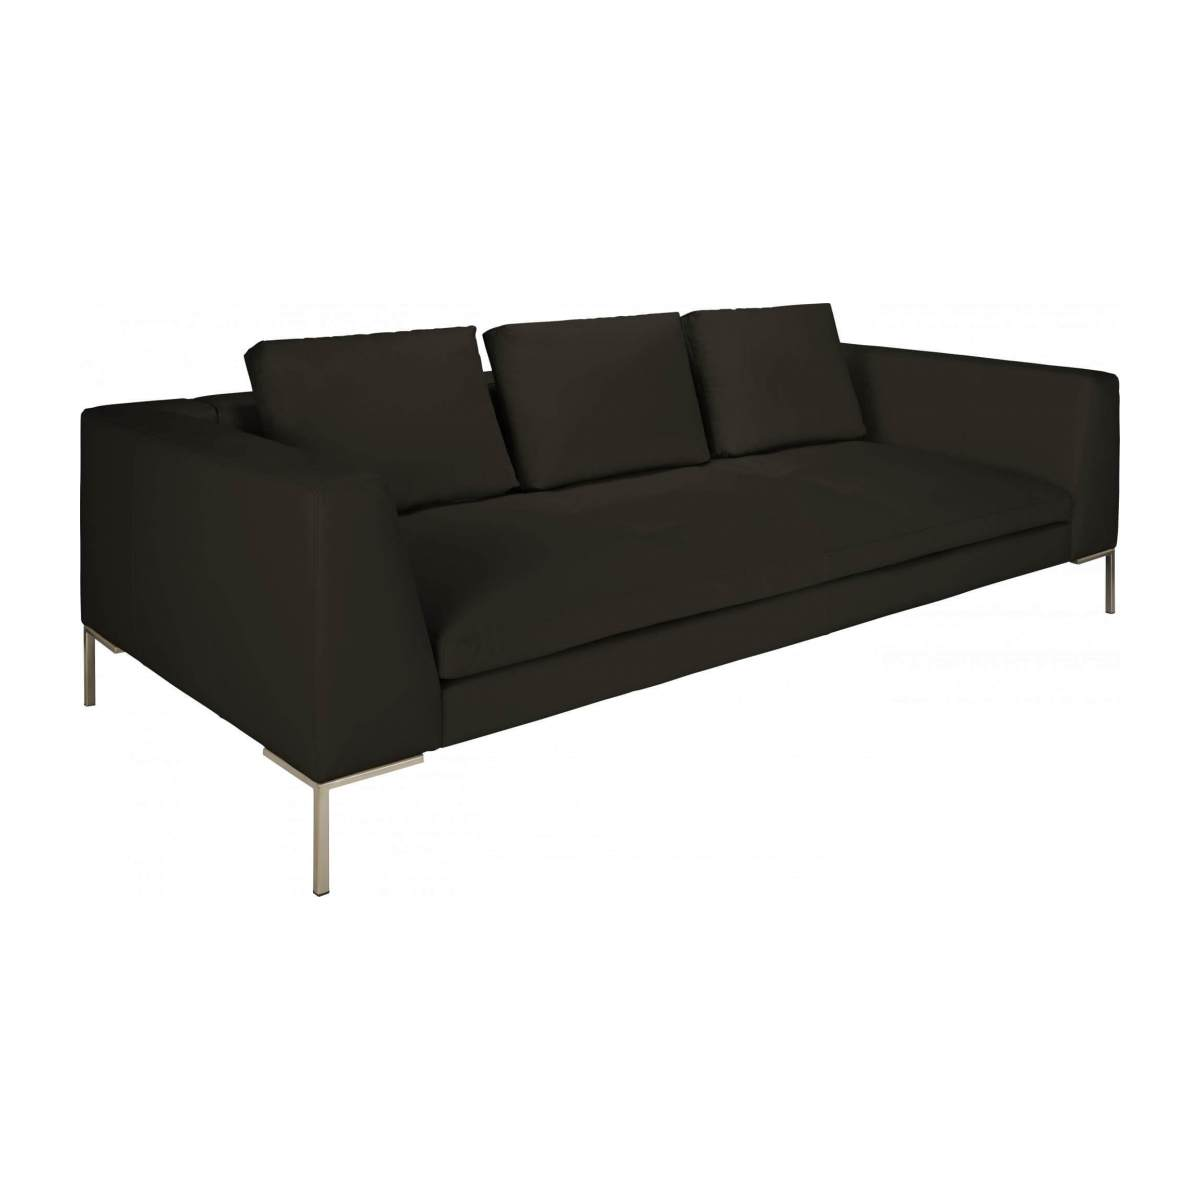 3 seater sofa in Eton veined leather, brown n°3